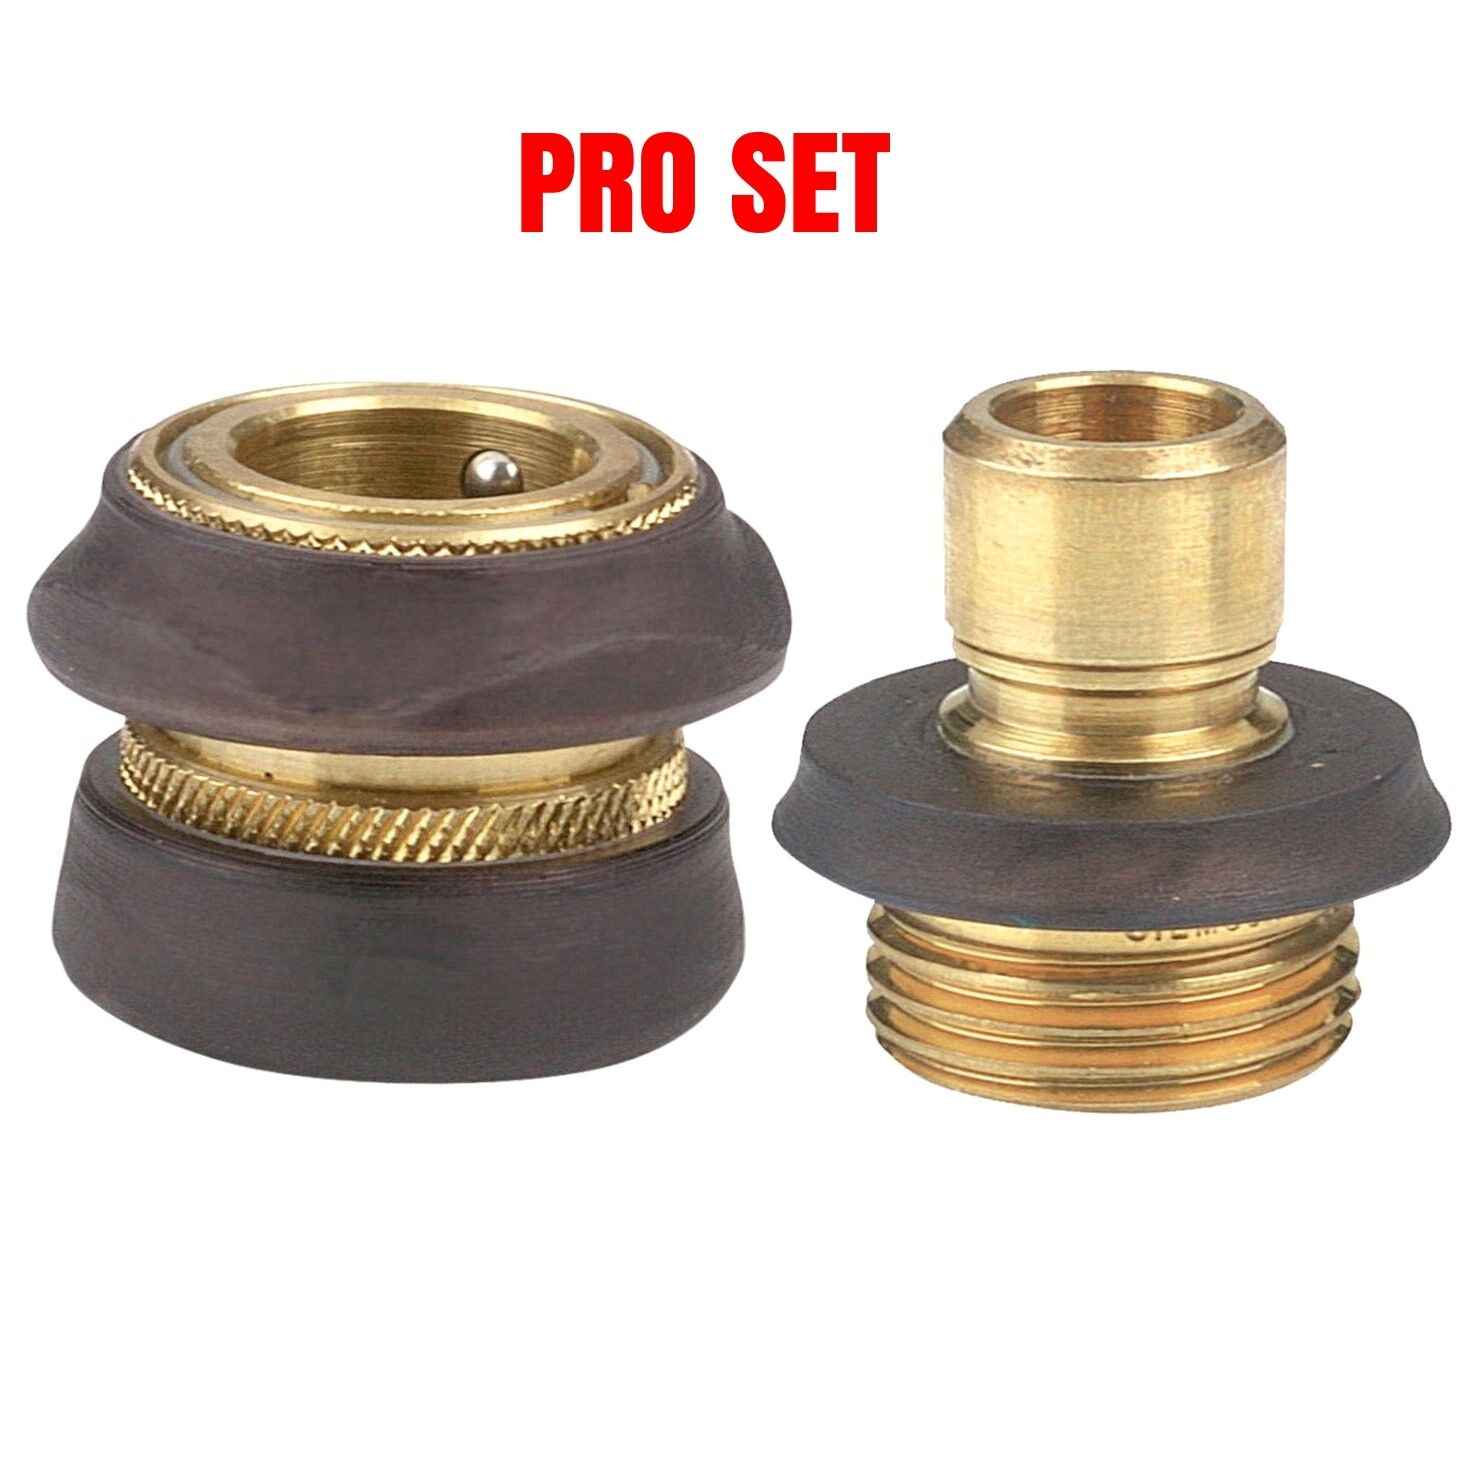 NEW GILMOUR PRO MODEL BRASS WATER GARDEN HOSE QUICK CONNECT